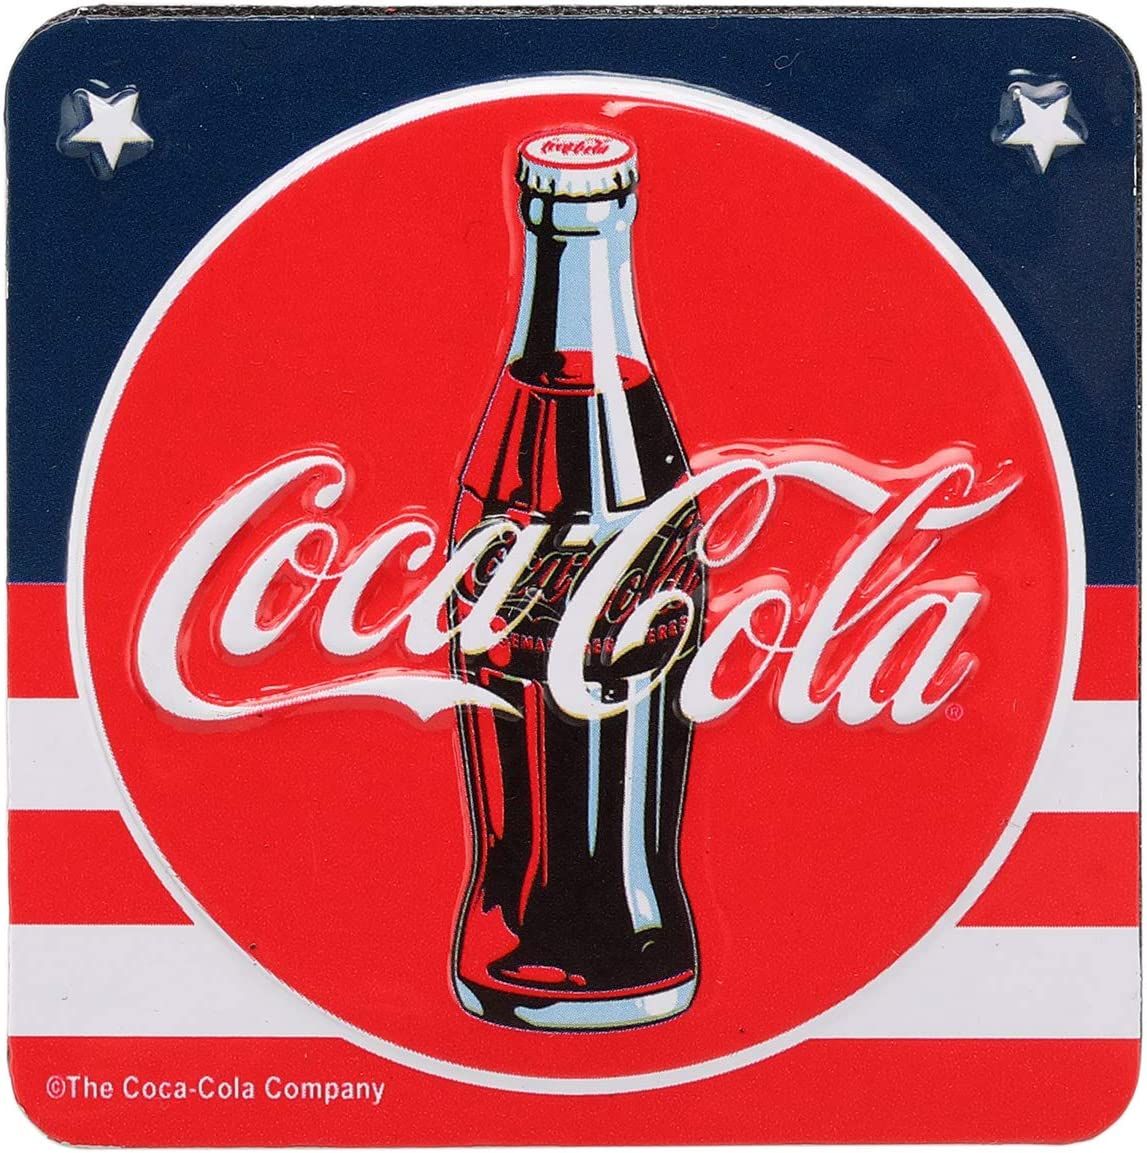 Open Road Brands Coca-Cola Vintage American Flag Style Tin Magnet - Coca-Cola Officially Licensed Product - Perfect Size for Home Decor